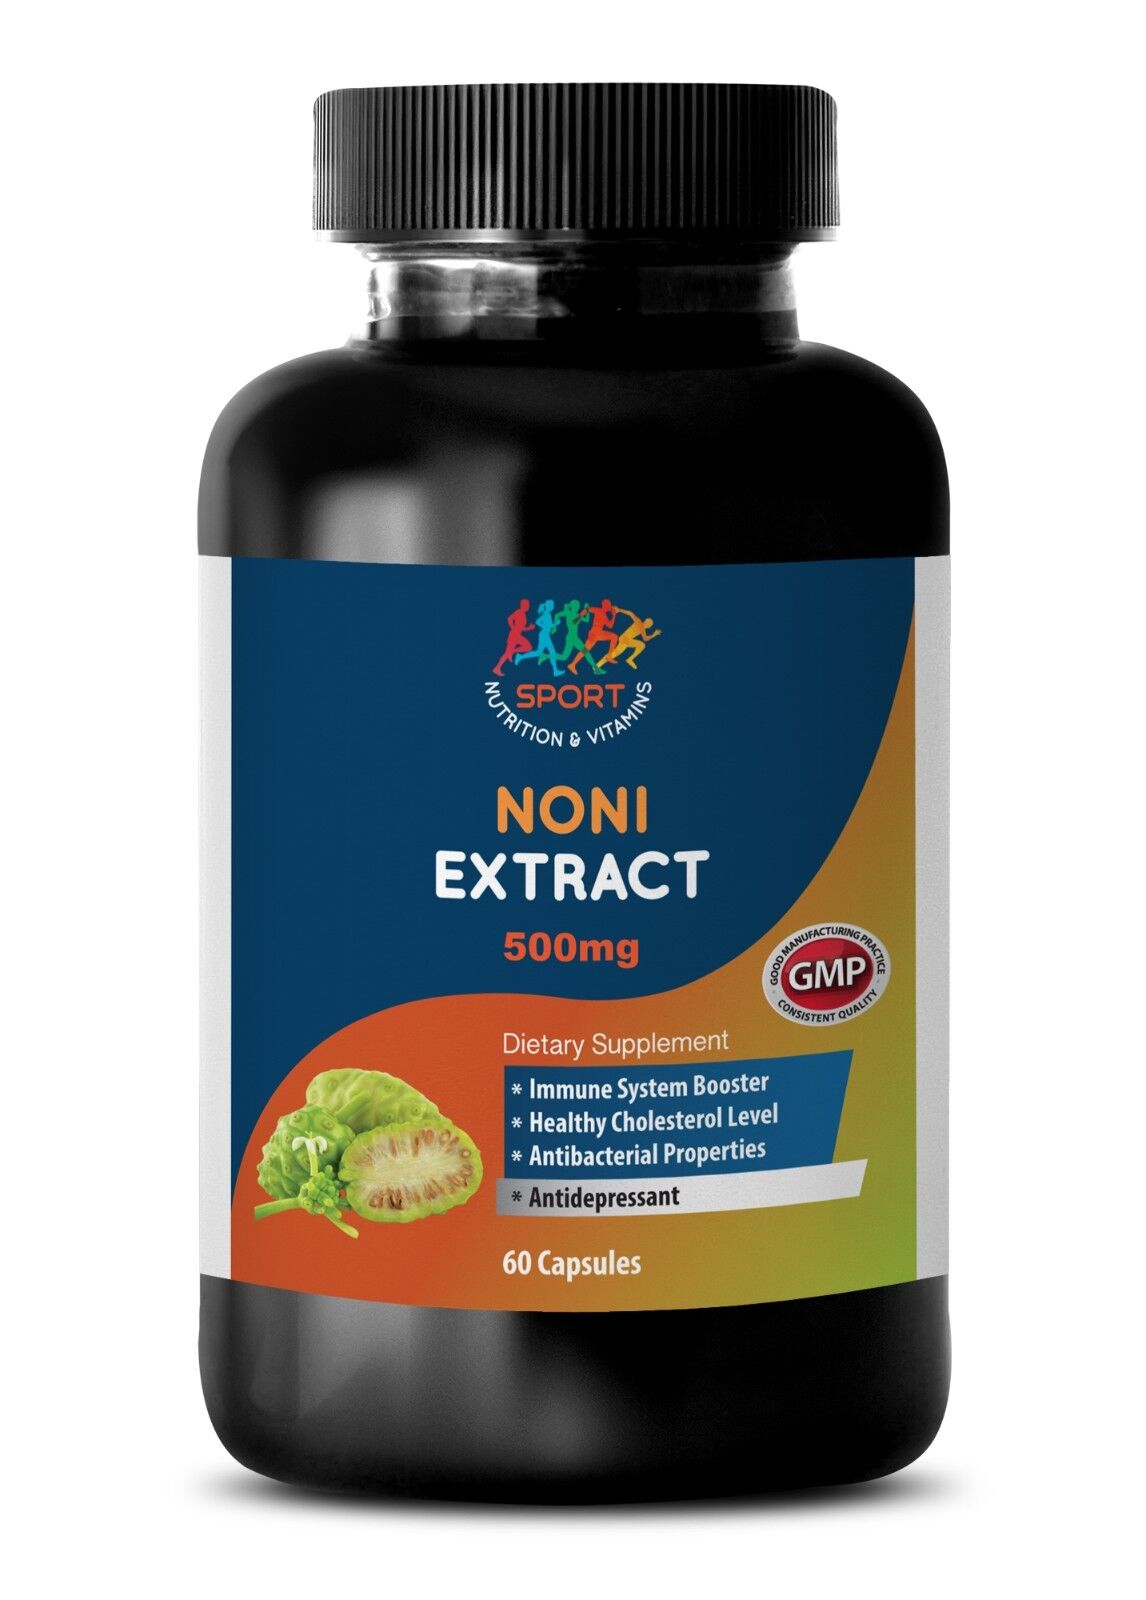 Energy Booster For Men - Noni Extract 500mg 1b - Noni Fruit Extract 11